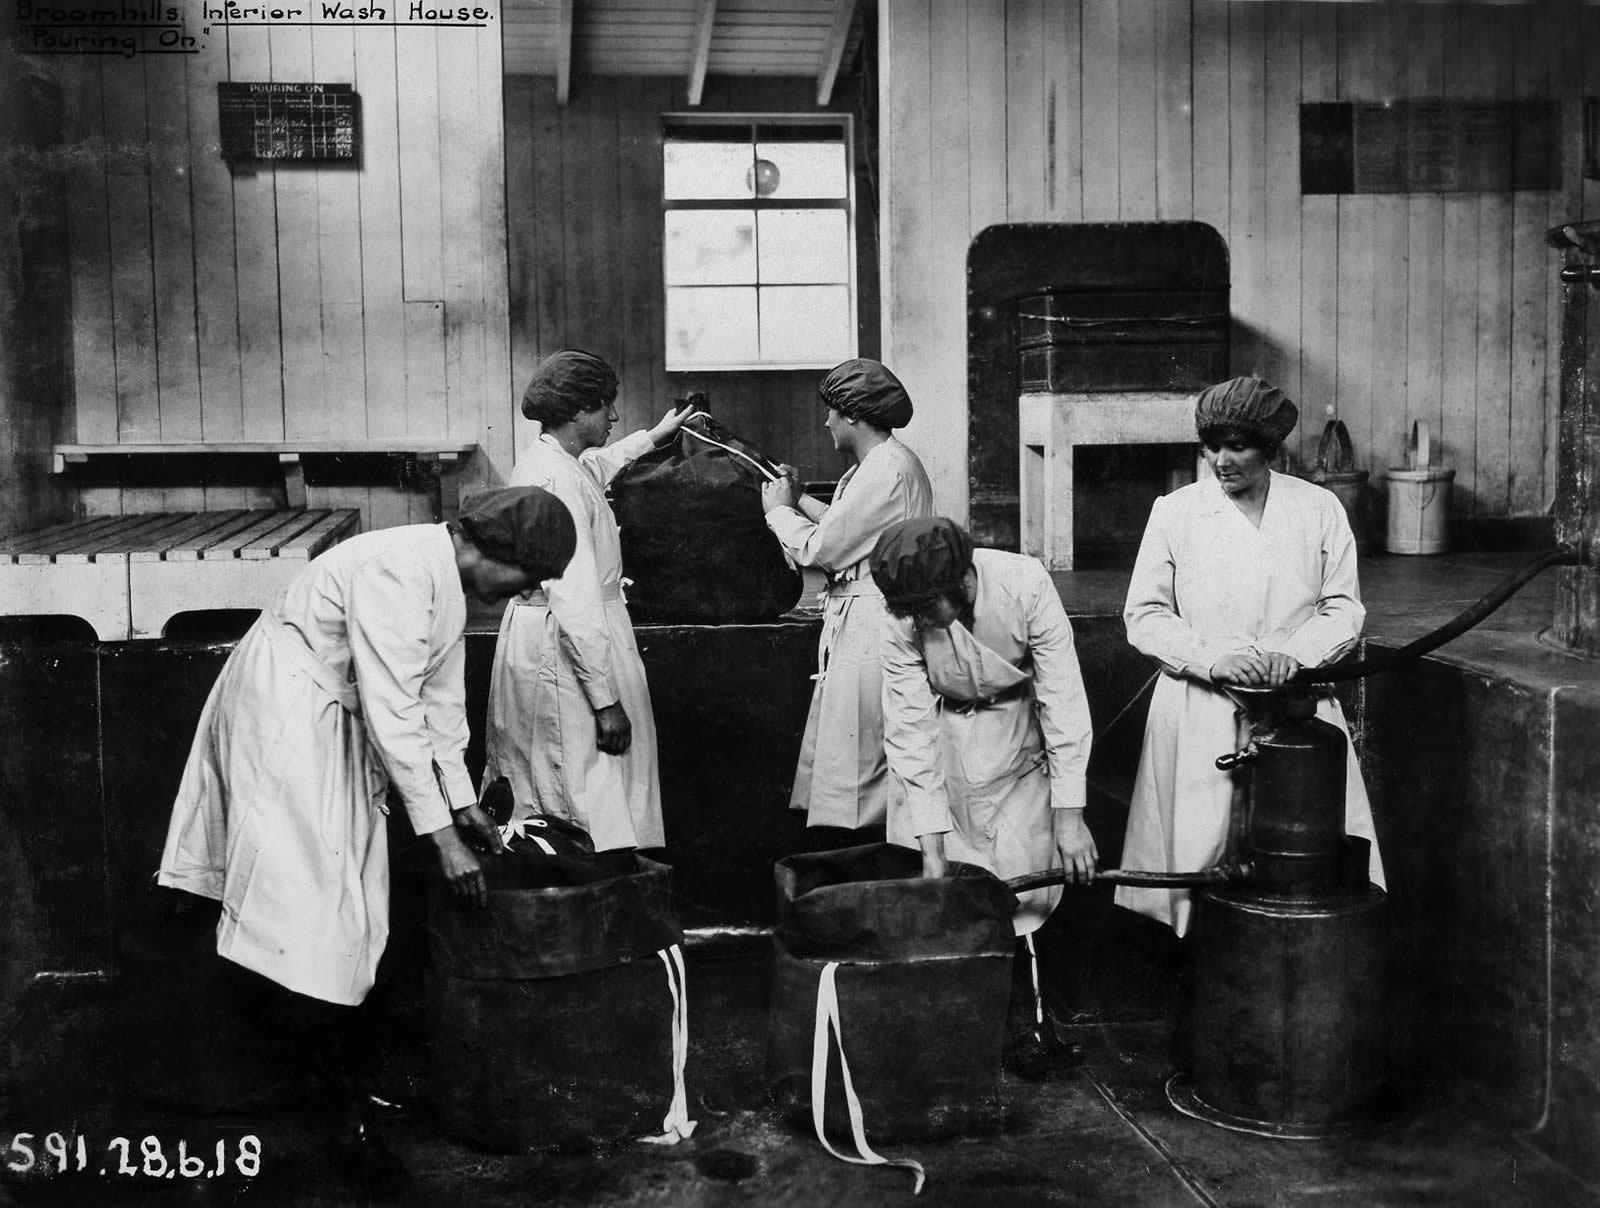 Image of five women working in a wash house